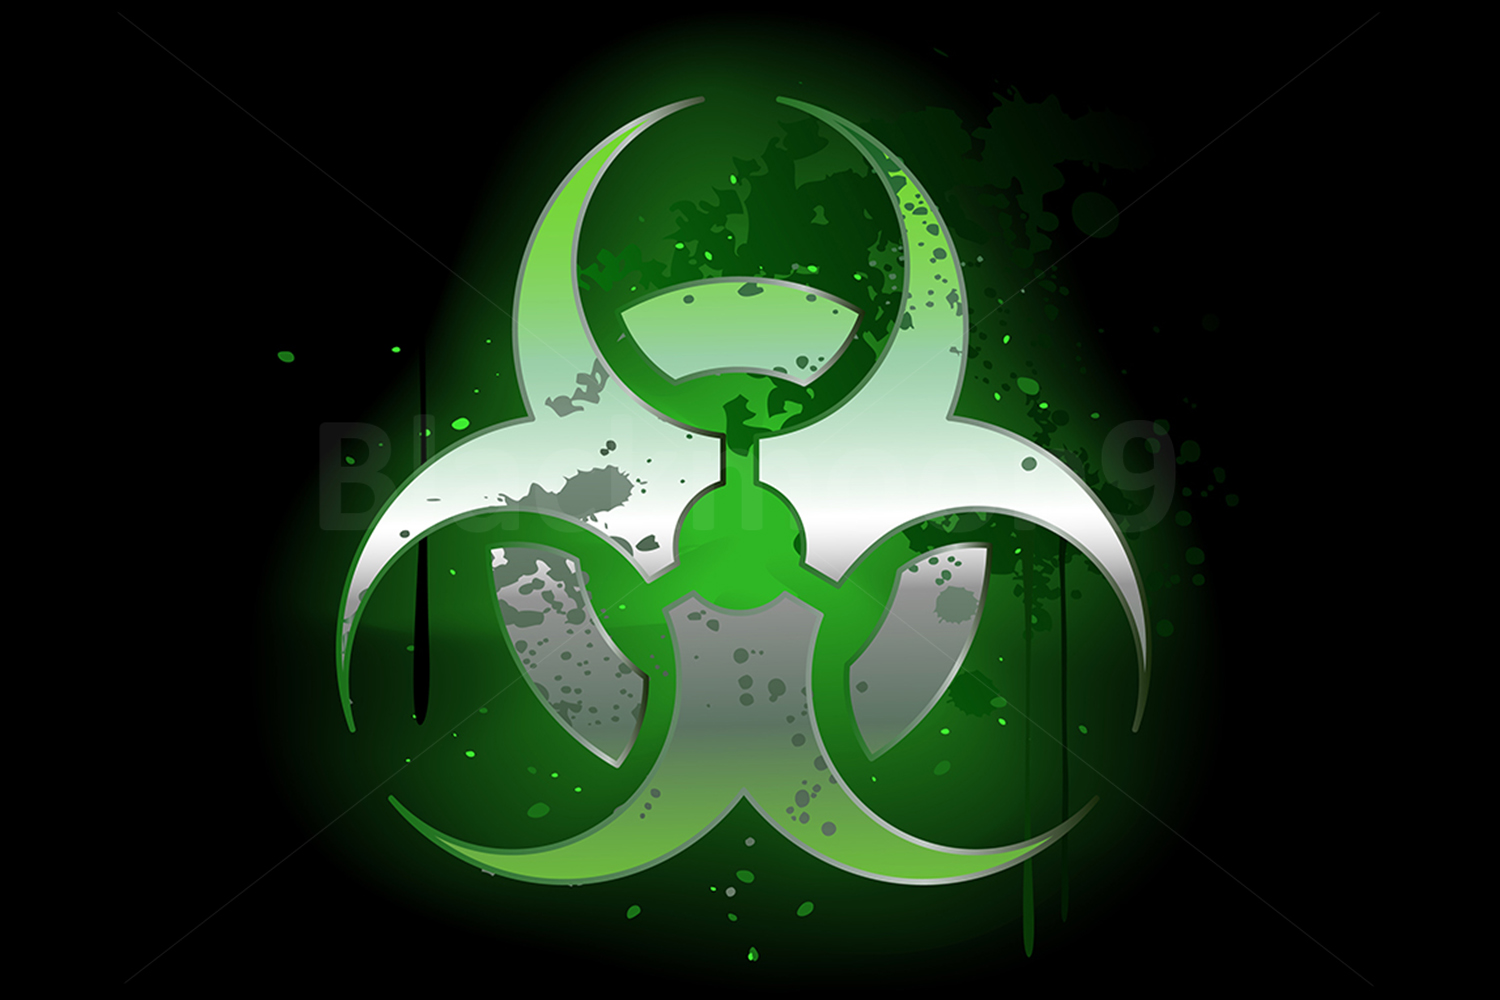 Download Free Biohazard Symbol On A Dark Background Graphic By Blackmoon9 for Cricut Explore, Silhouette and other cutting machines.